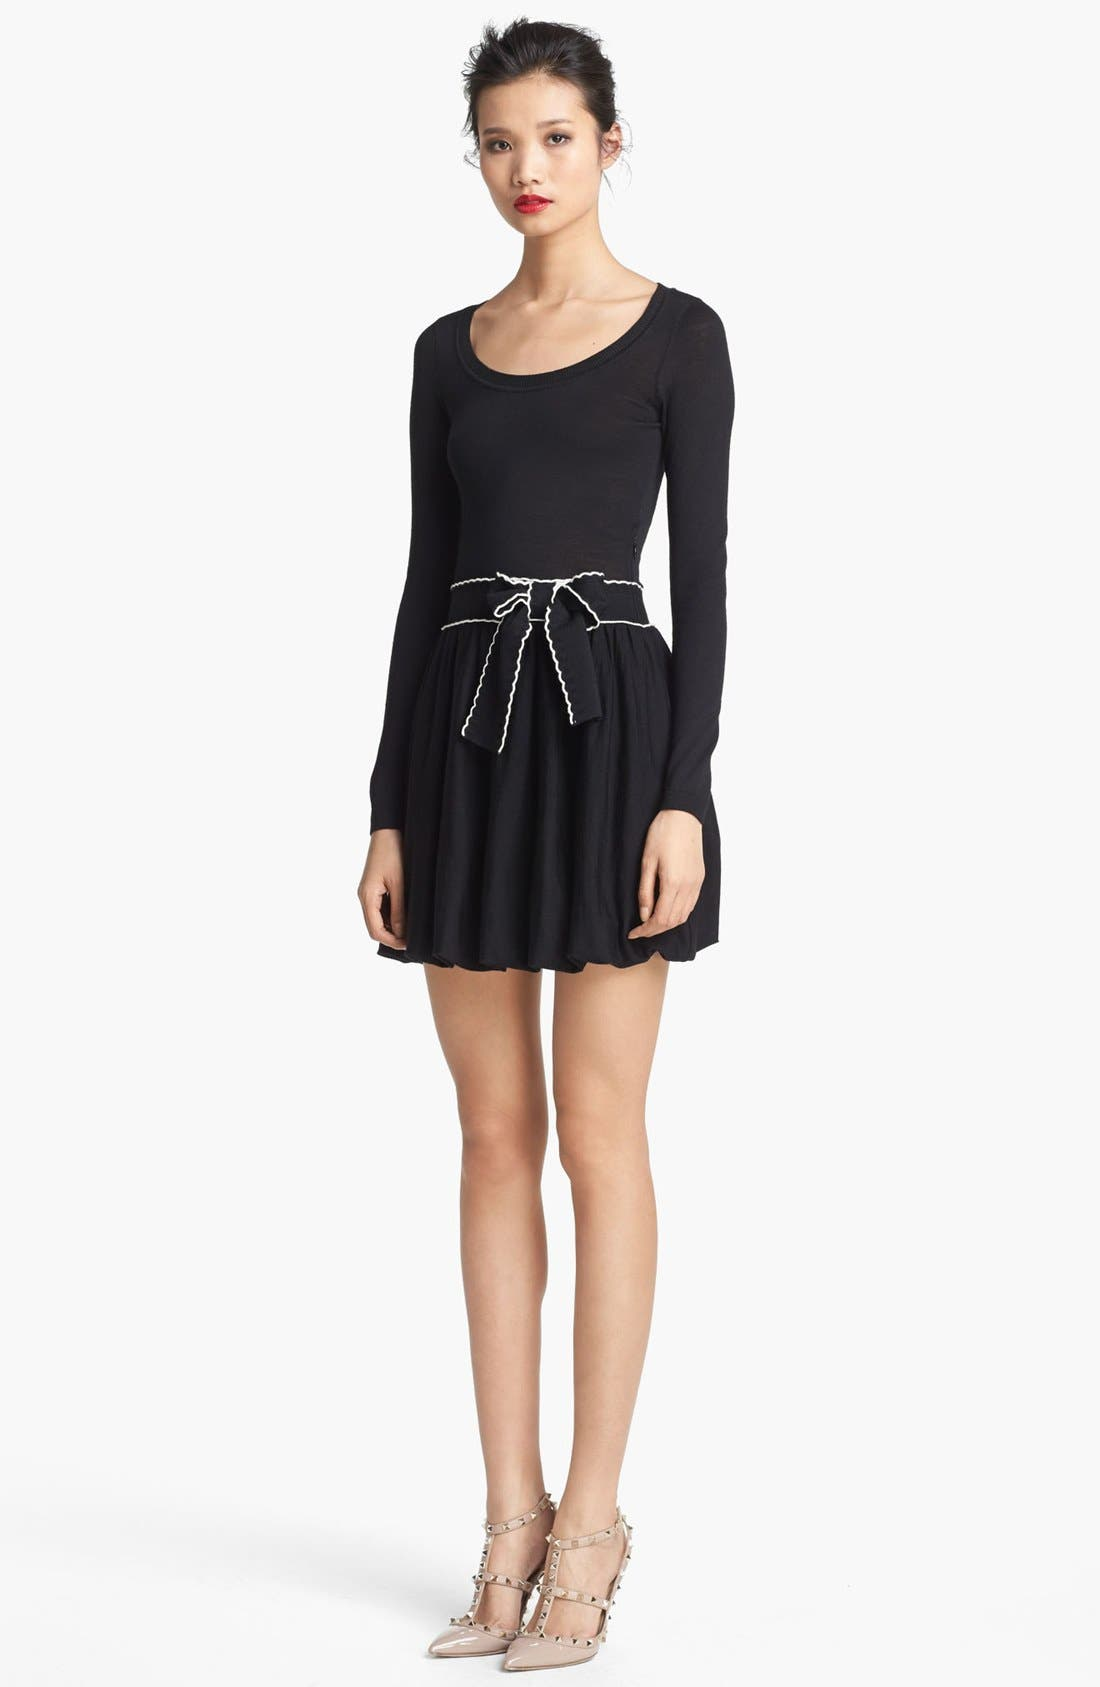 Main Image - RED Valentino Knit Dress with Ribbon Bow Belt